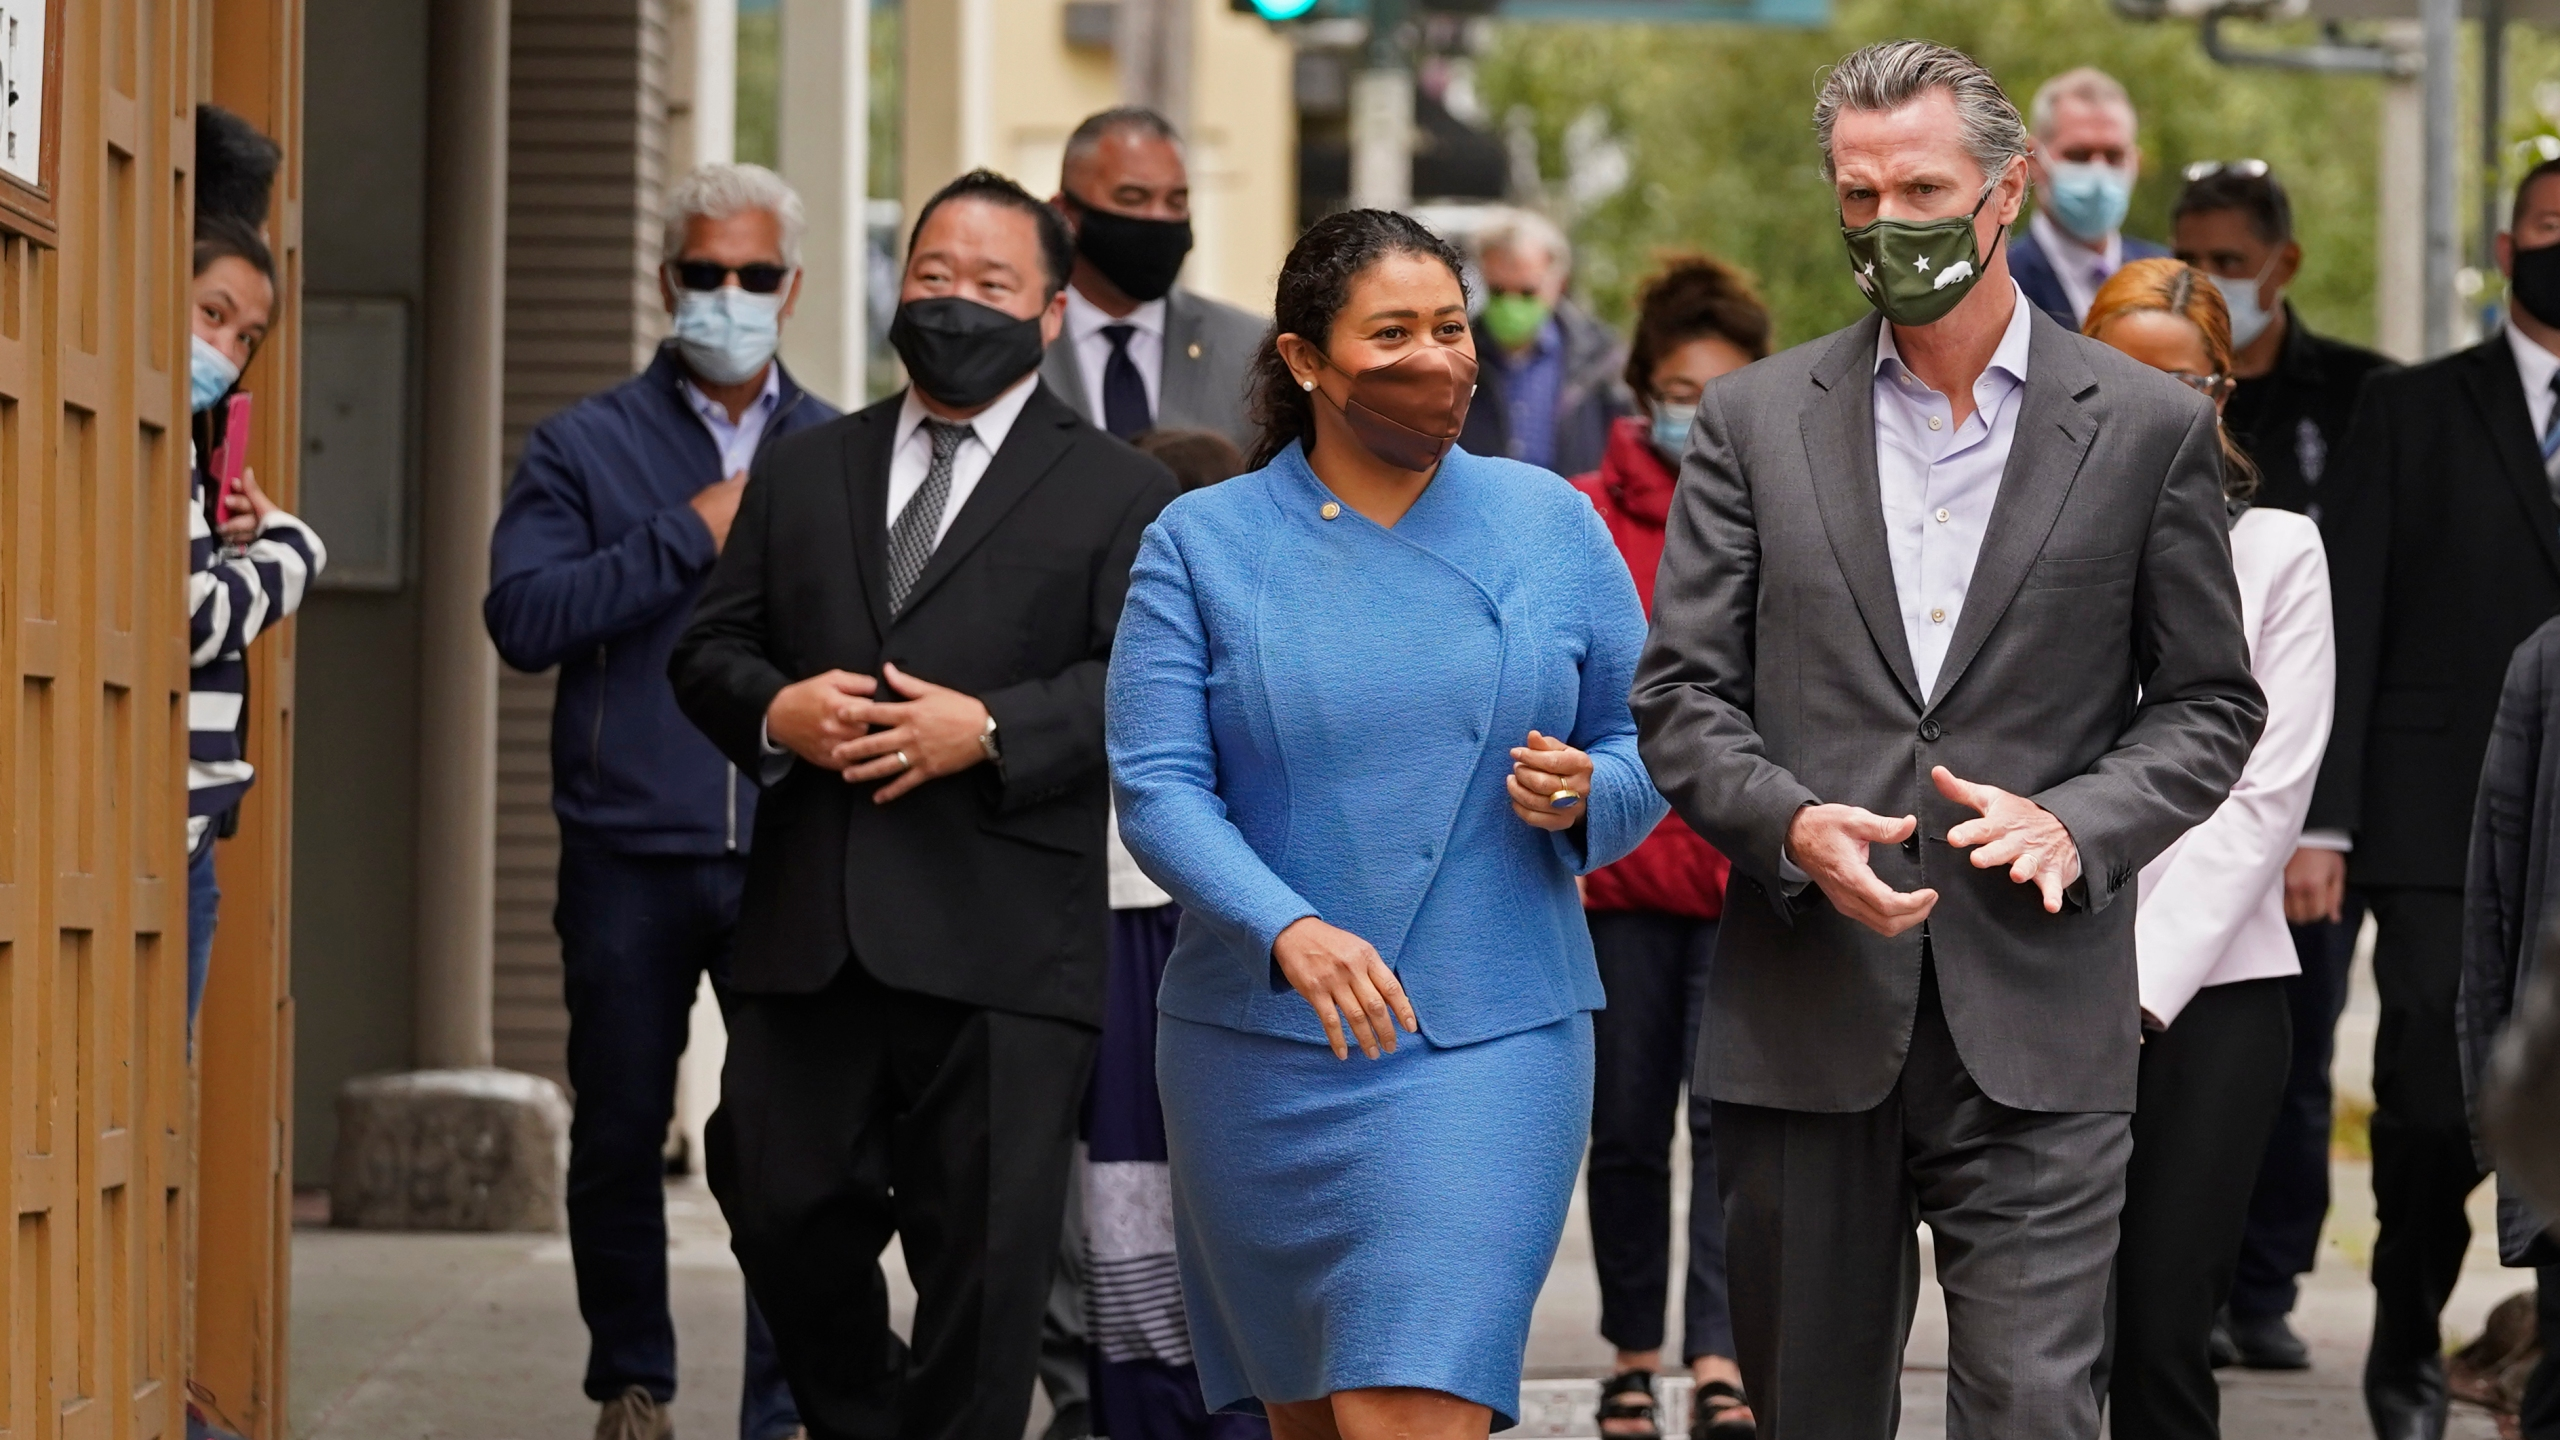 In this June 3, 2021 file photo California Gov. Gavin Newsom walks with San Francisco Mayor London Breed on Geary Street to a news conference outside Tommy's Mexican Restaurant in San Francisco. (Eric Risberg/Associated Press)